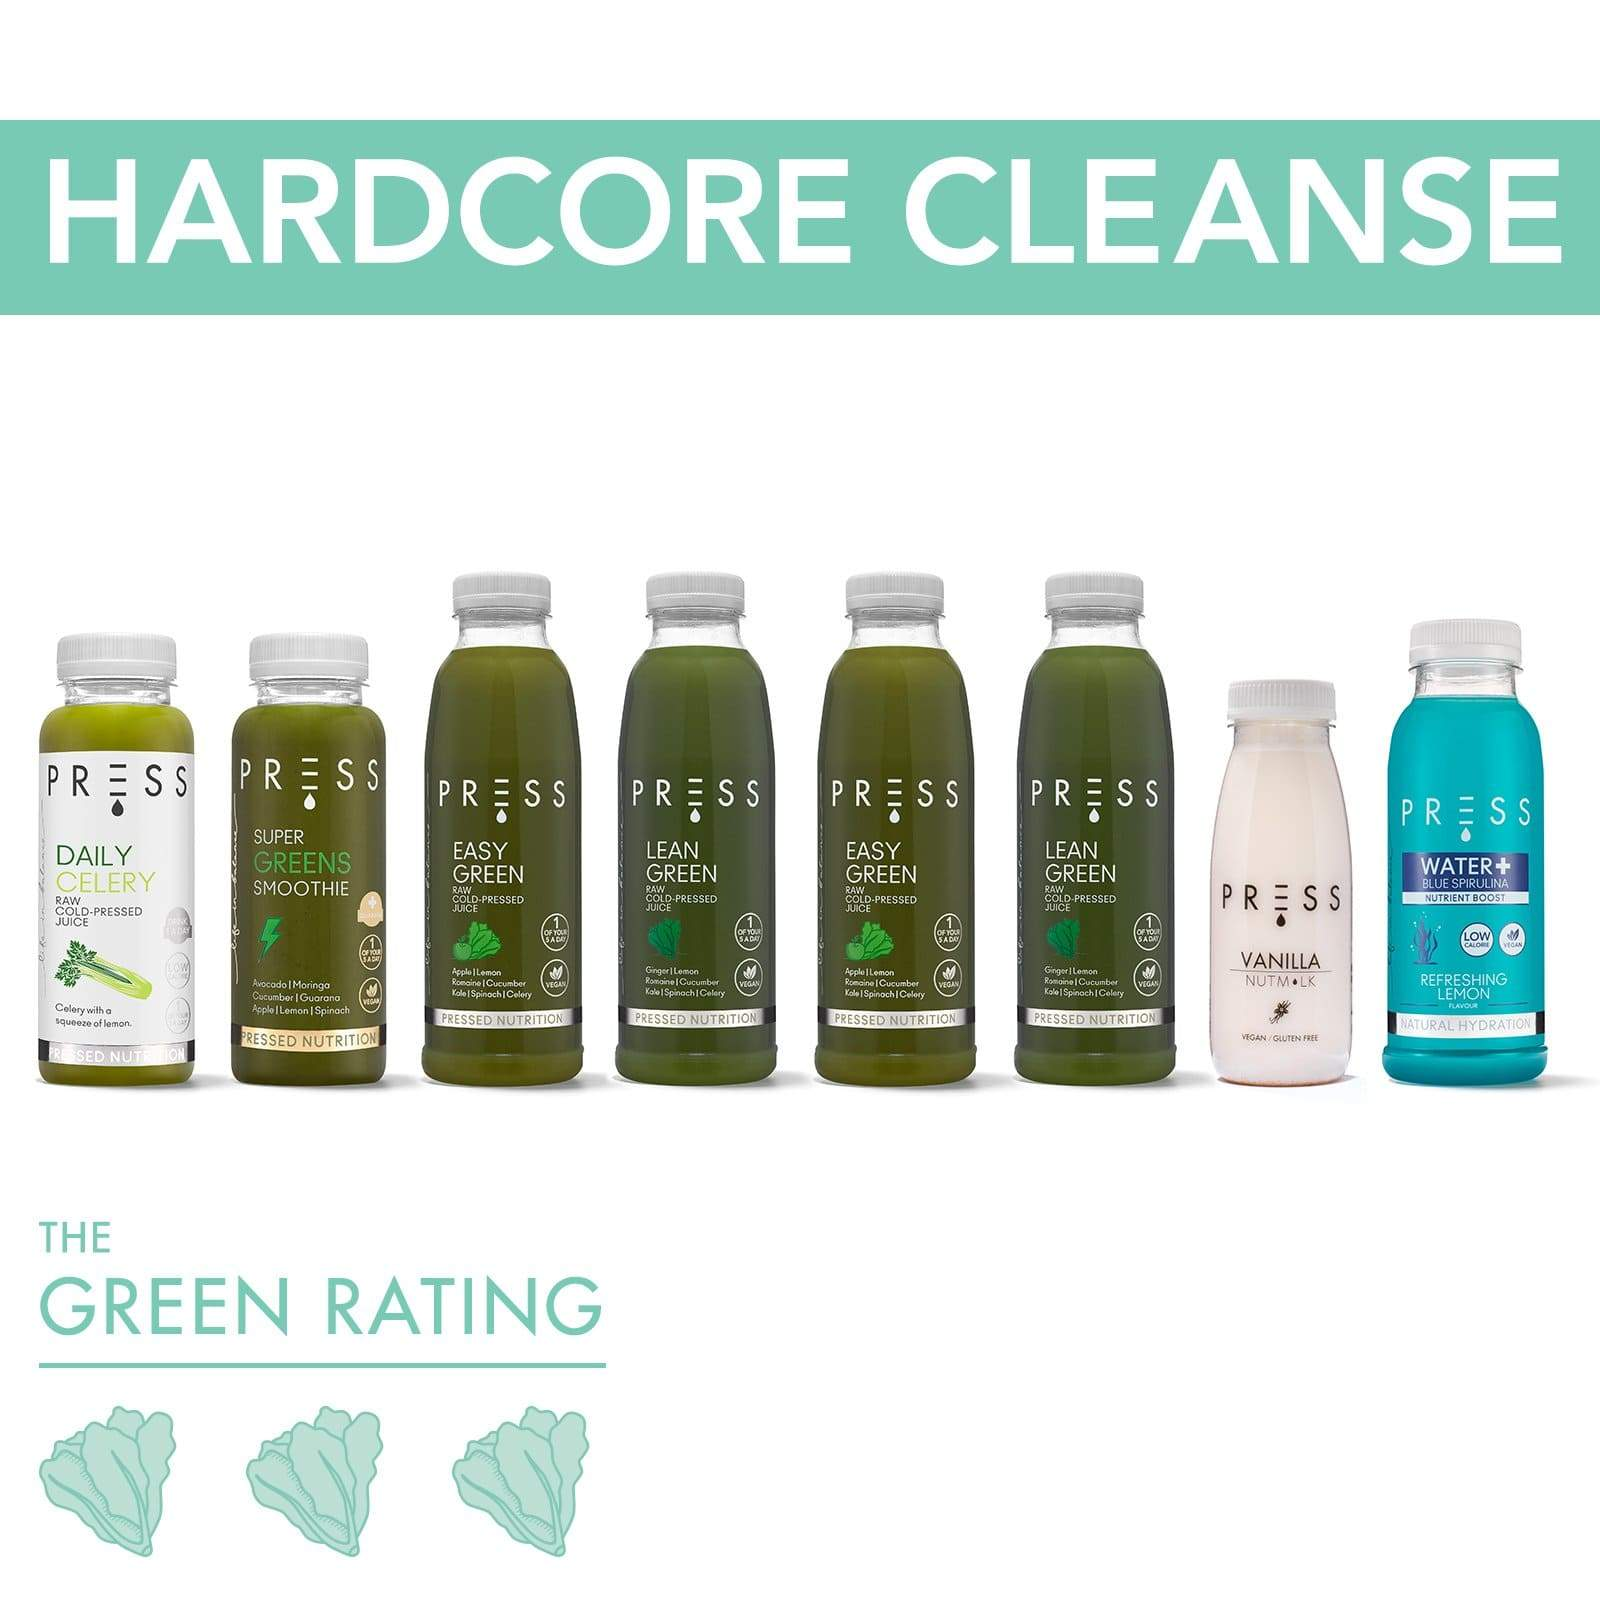 Hardcore Juice Cleanse - PRESS London